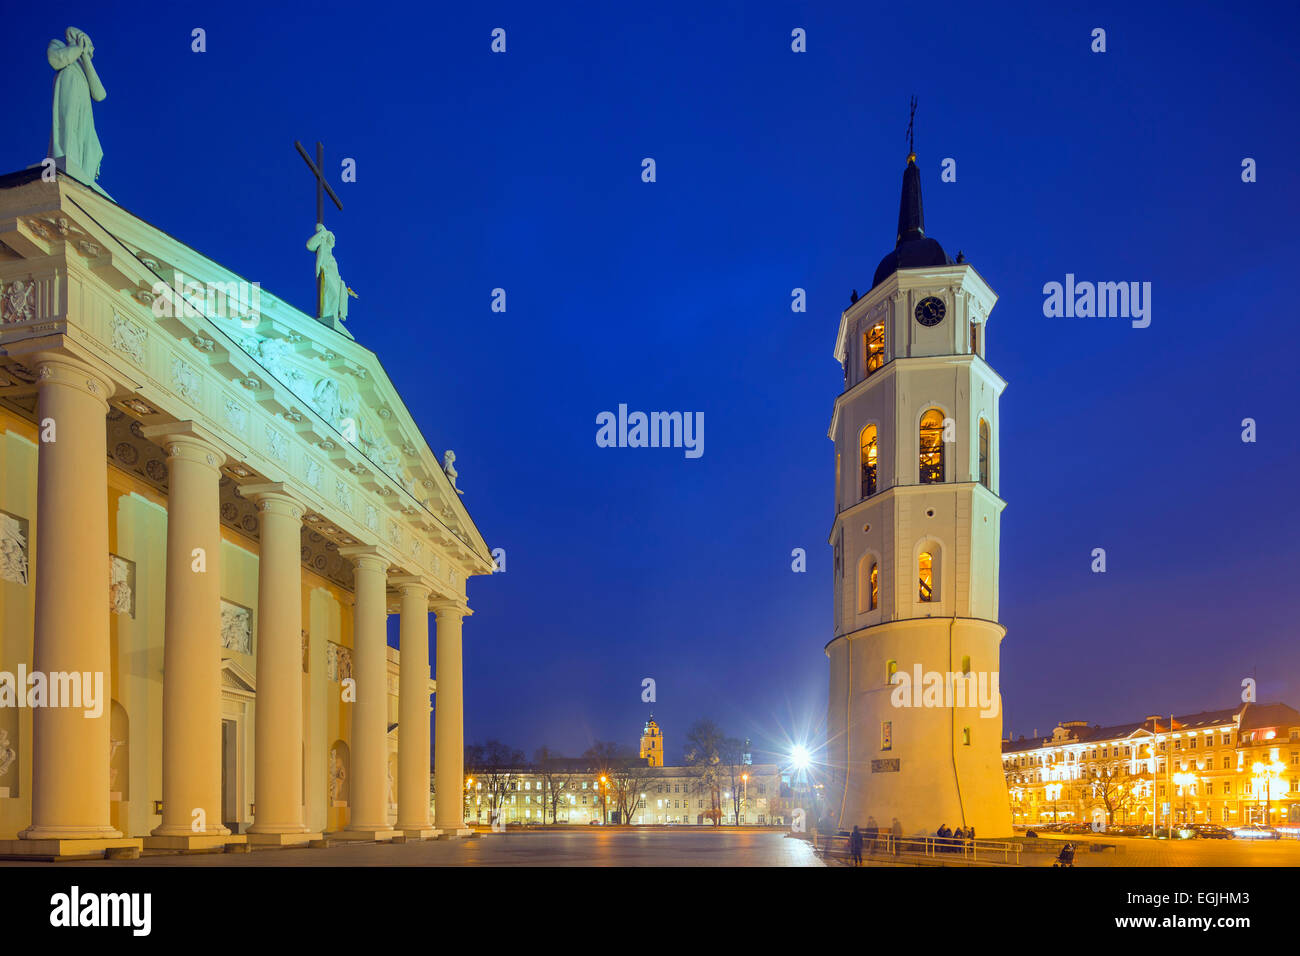 Europe, Baltic states, Lithuania, Vilnius, St. Stanislaus Cathedral and Varpine bell tower in Cathedral Square - Stock Image